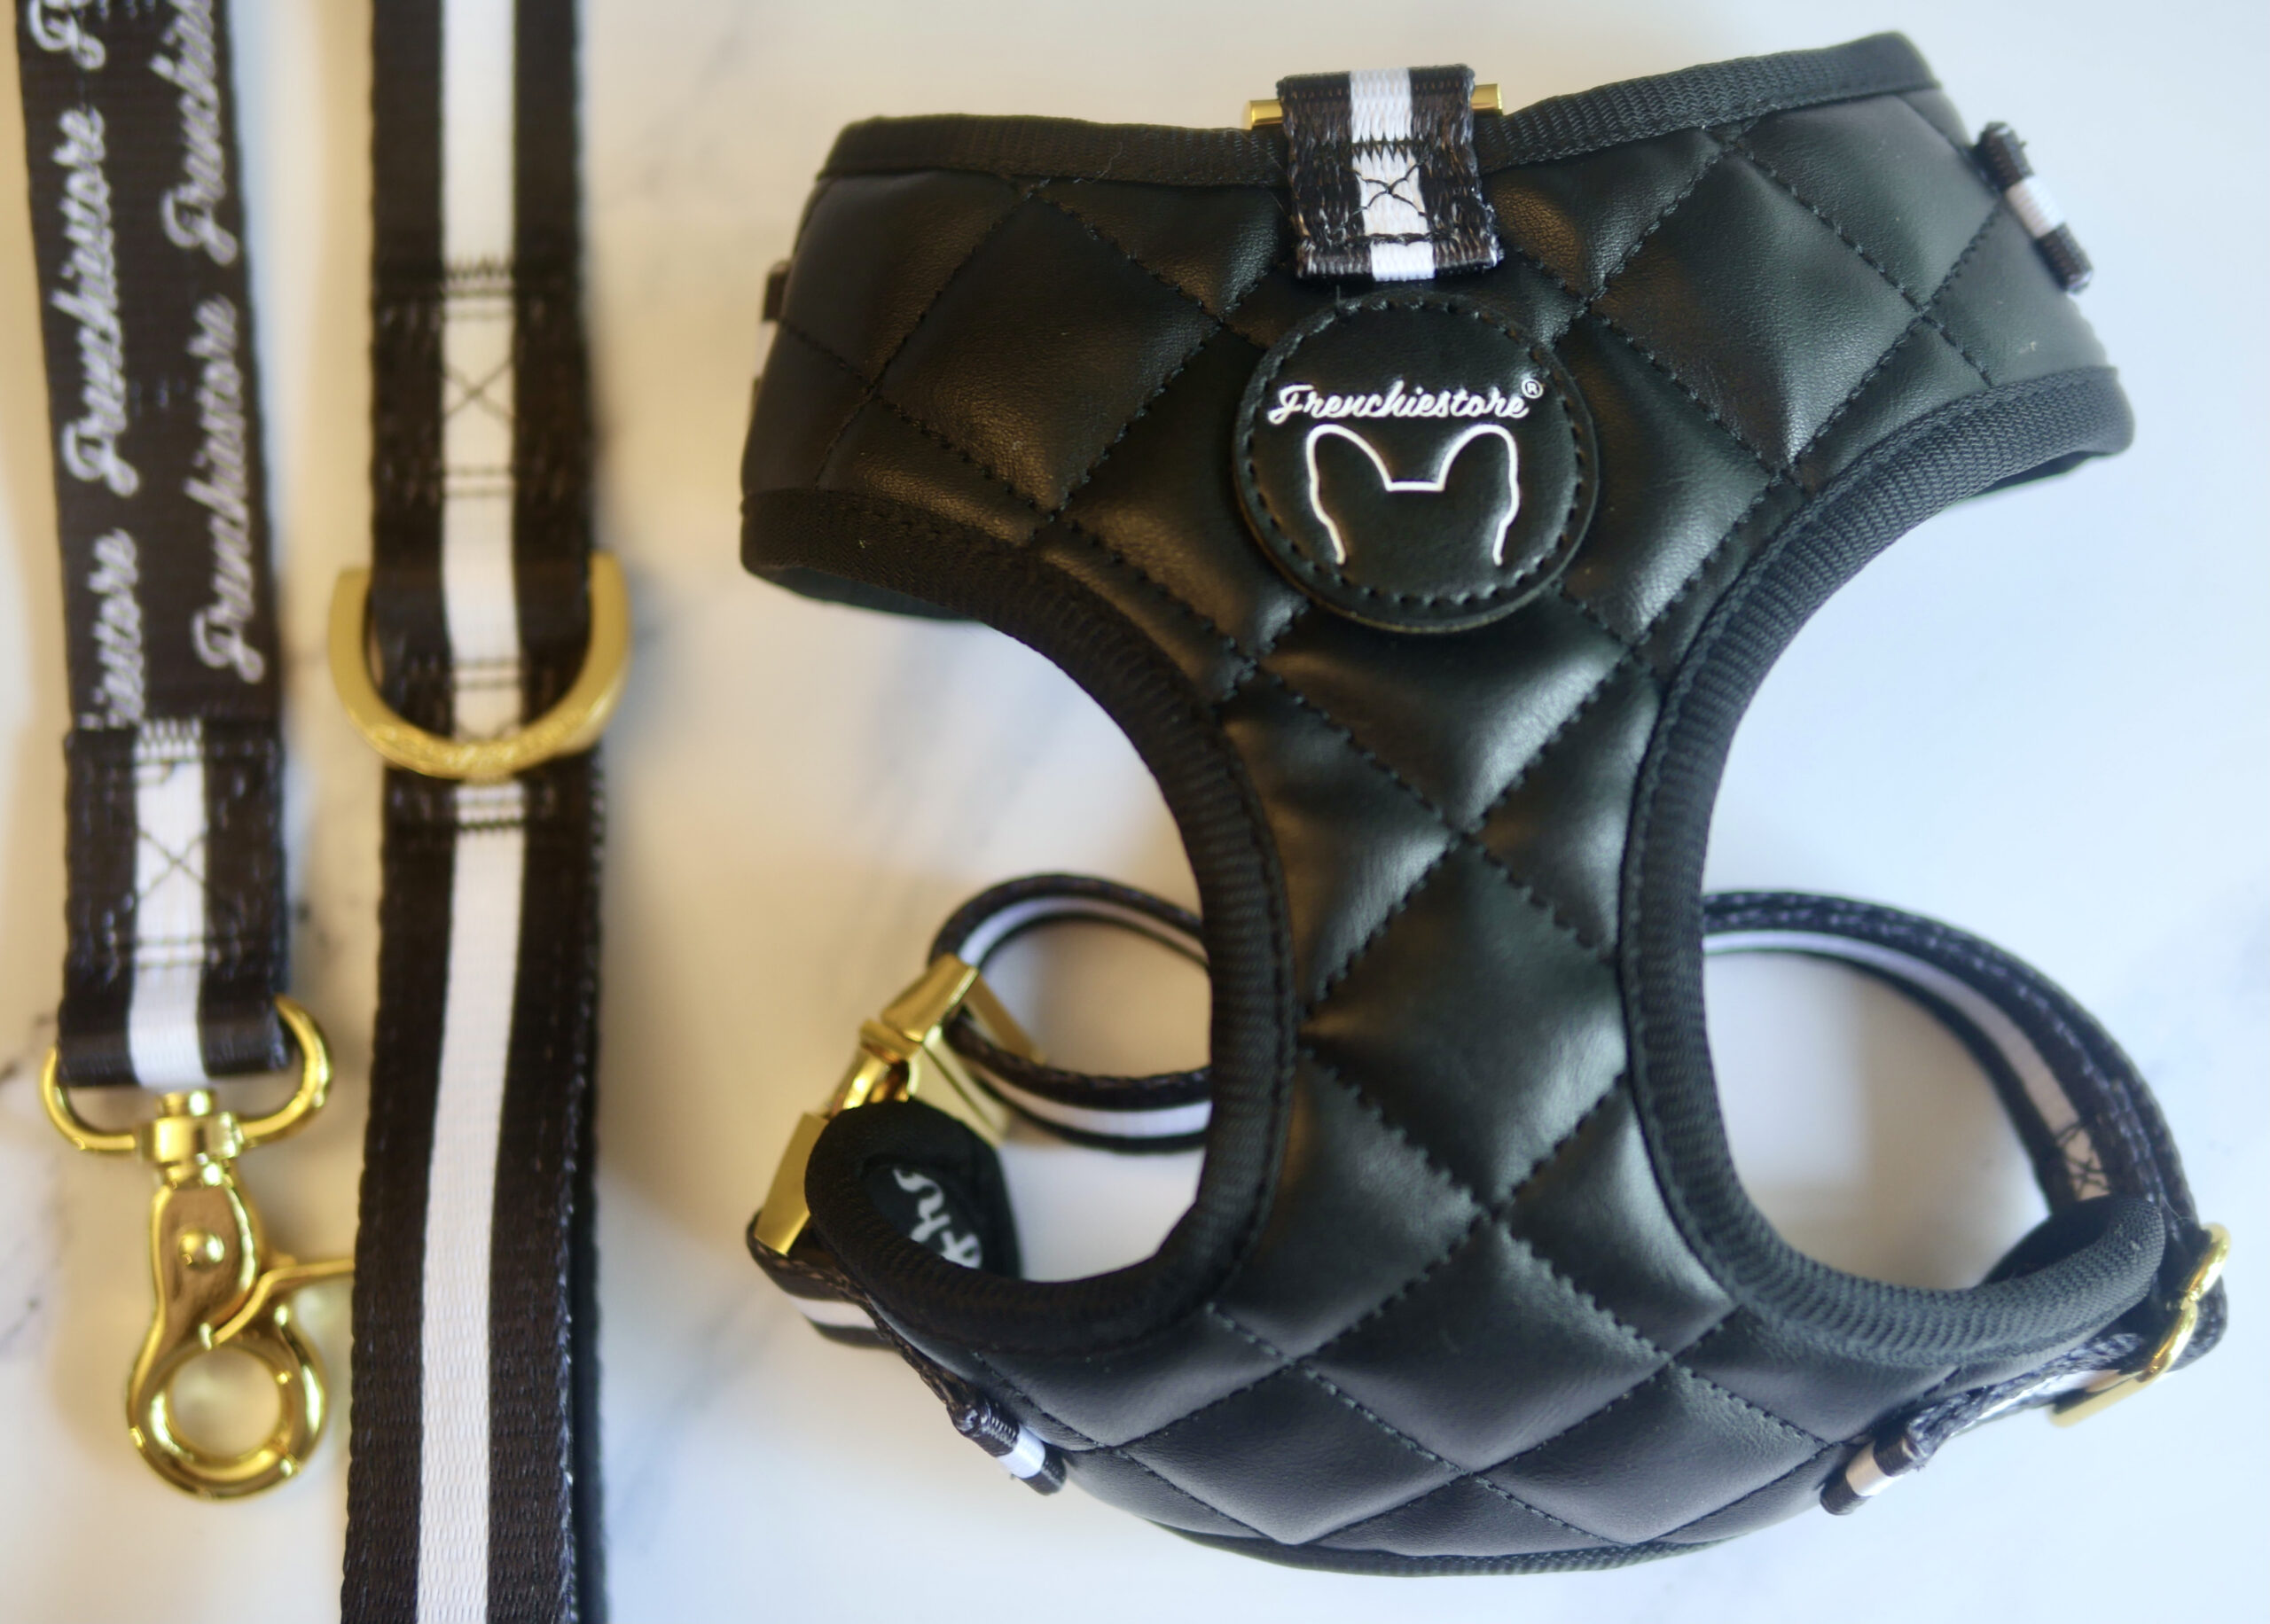 Frenchie Store black, vegan leather harness and black and white luxury leash